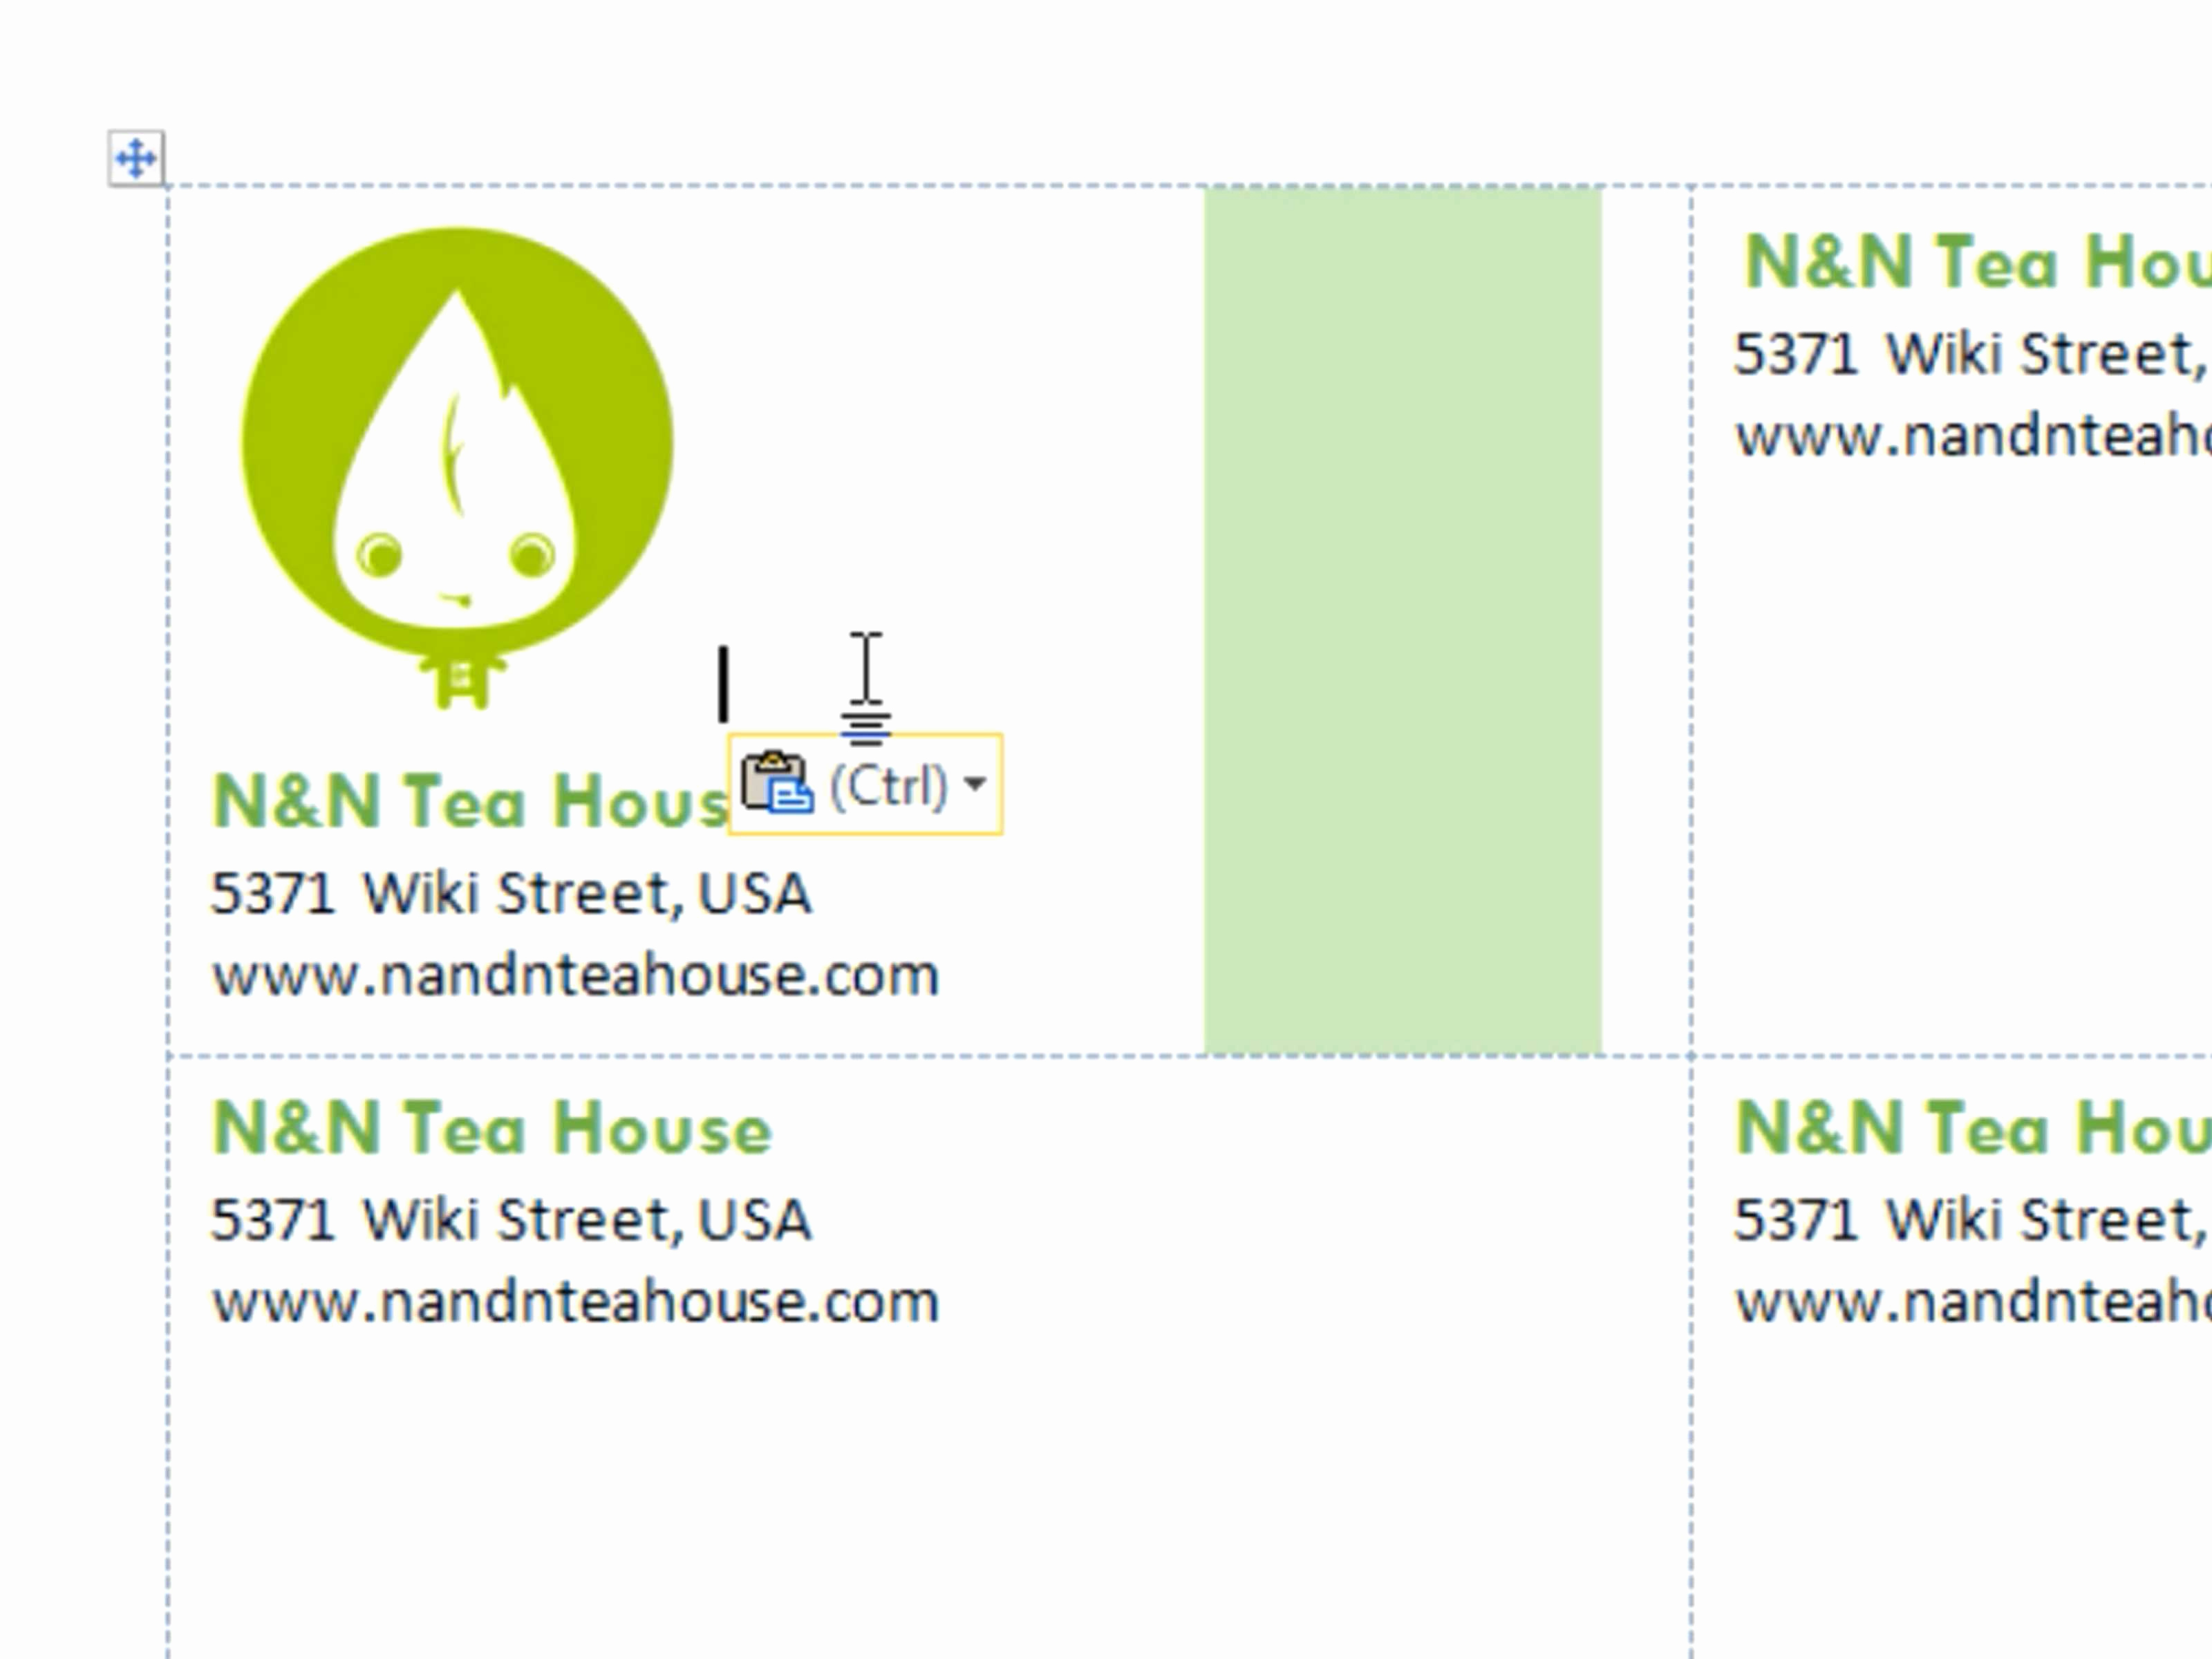 Word Template for Business Cards Beautiful 14 Best Microsoft Business Card Templates Free